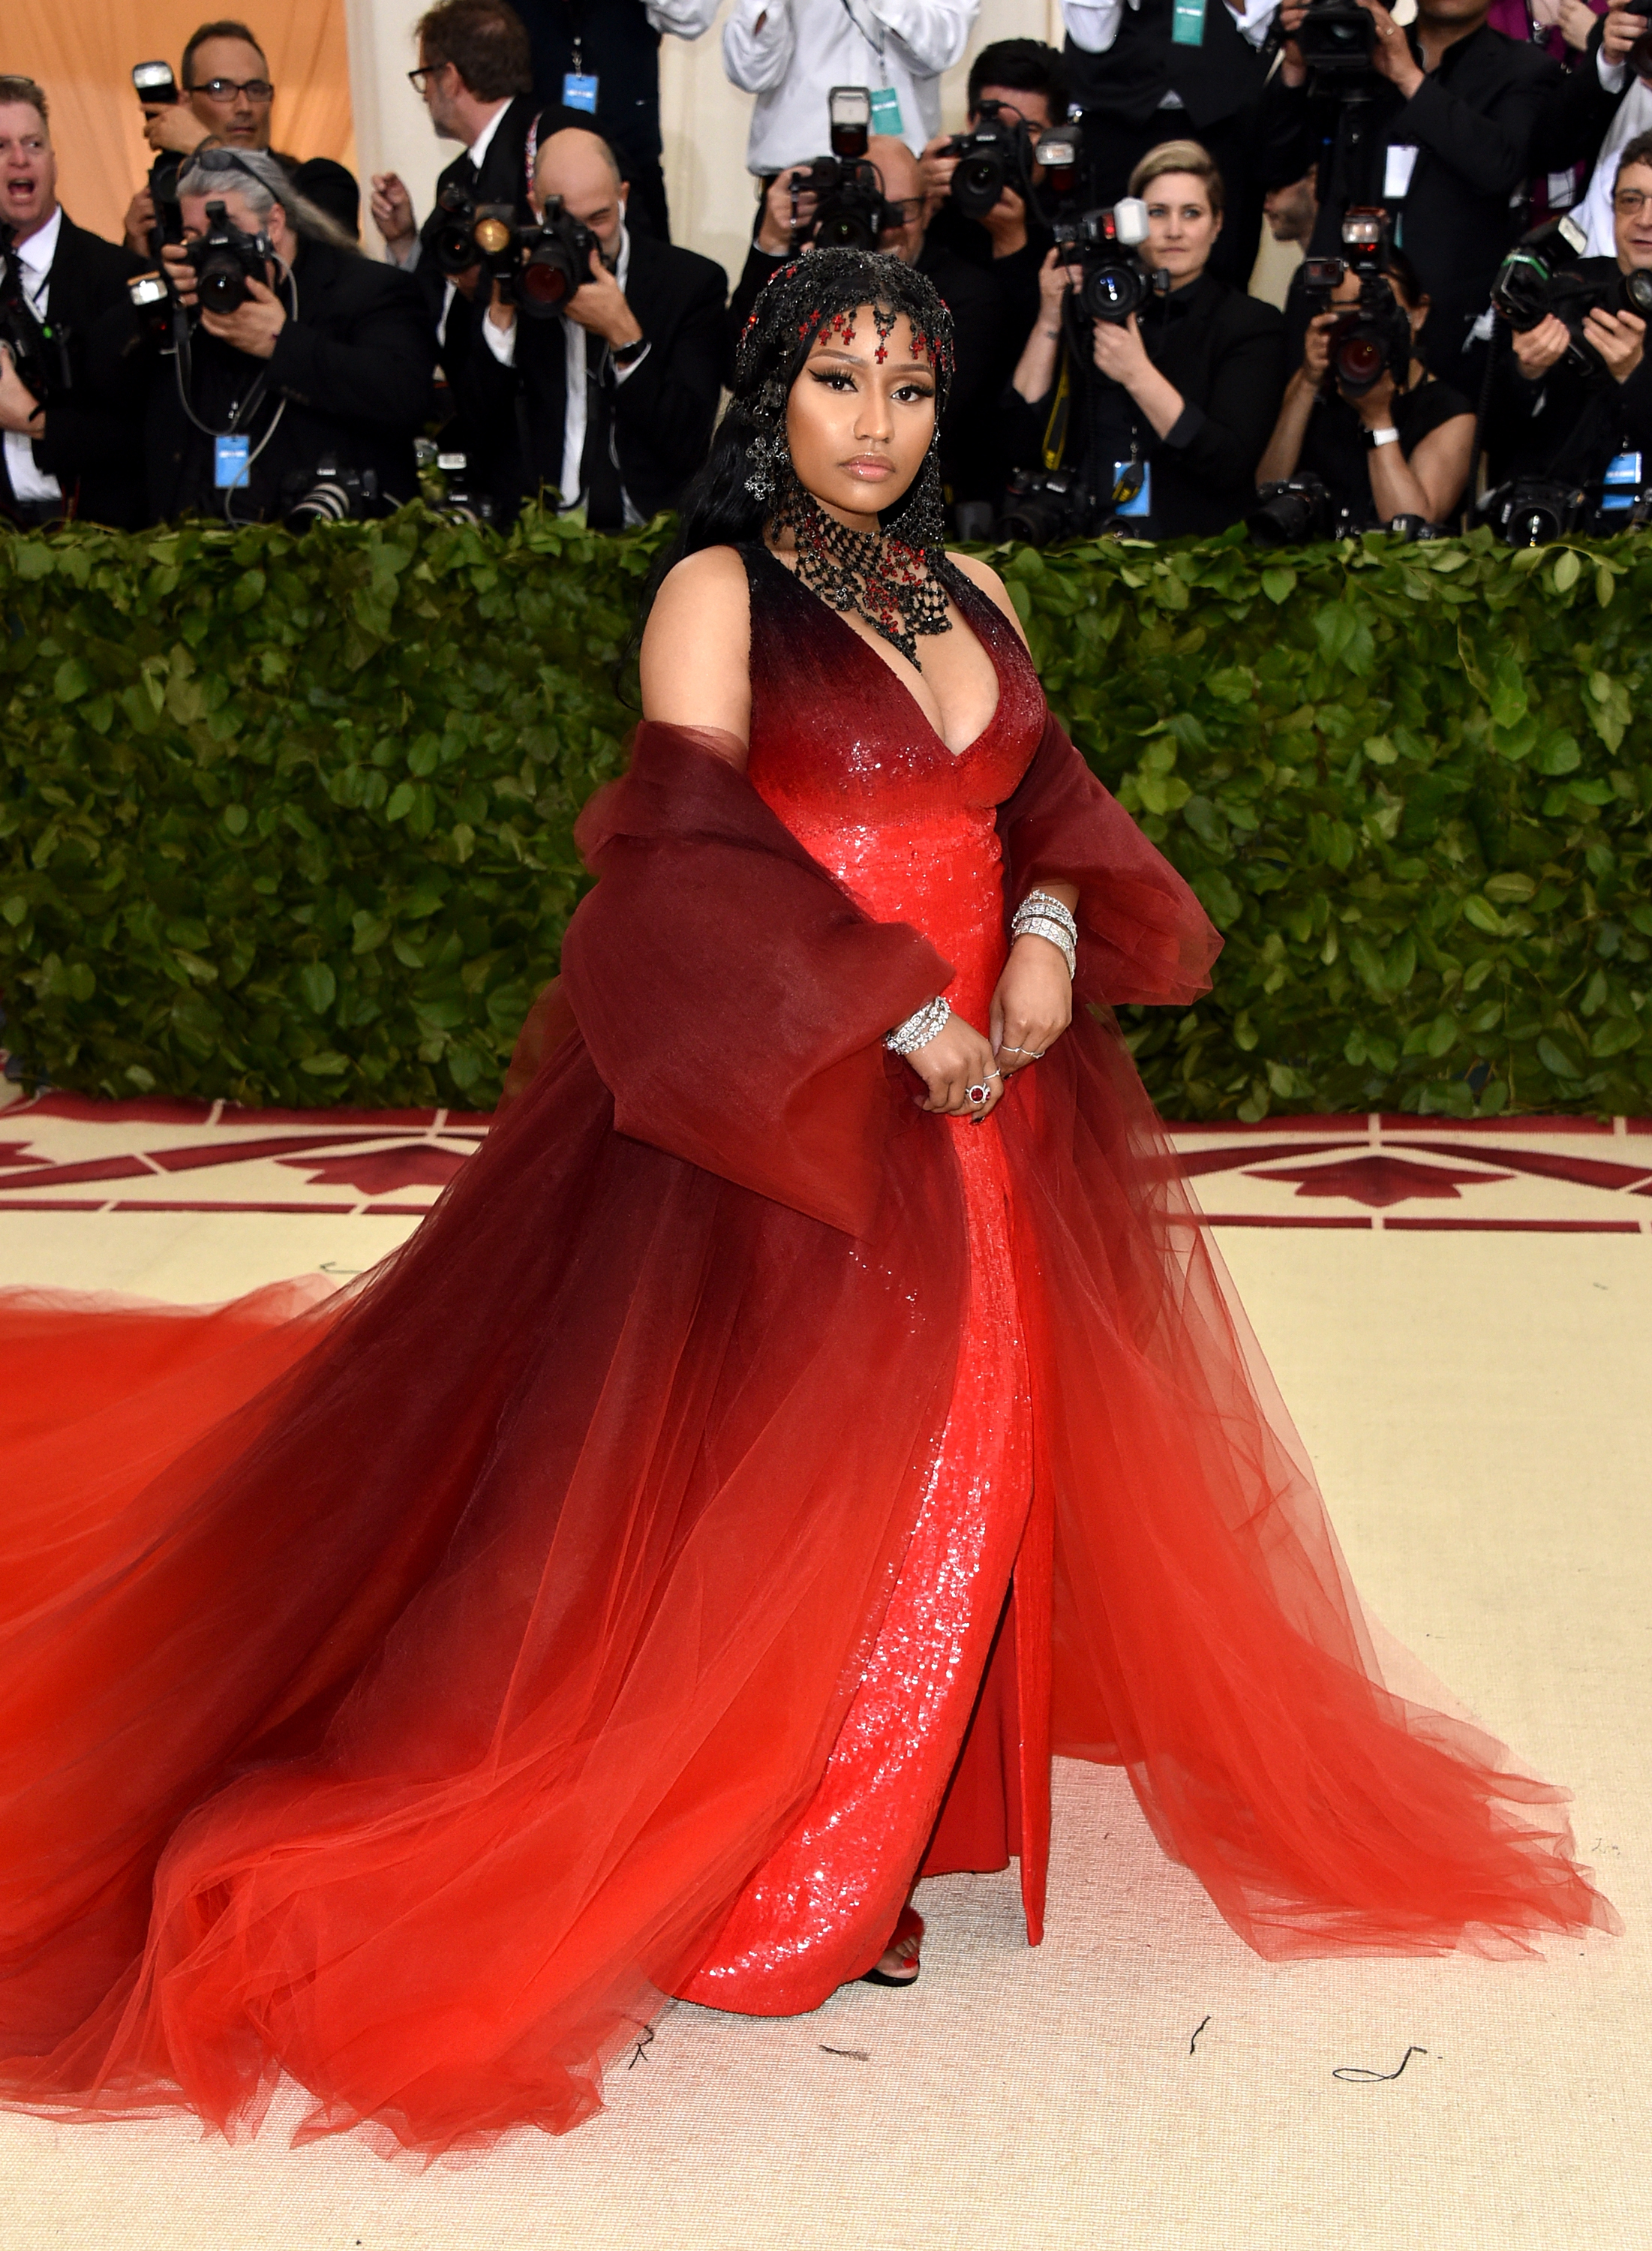 Nicki Minaj attends The Metropolitan Museum of Art's Costume Institute Benefit celebrating the opening of Heavenly Bodies: Fashion and the Catholic Imagination in New York City on May 7, 2018.